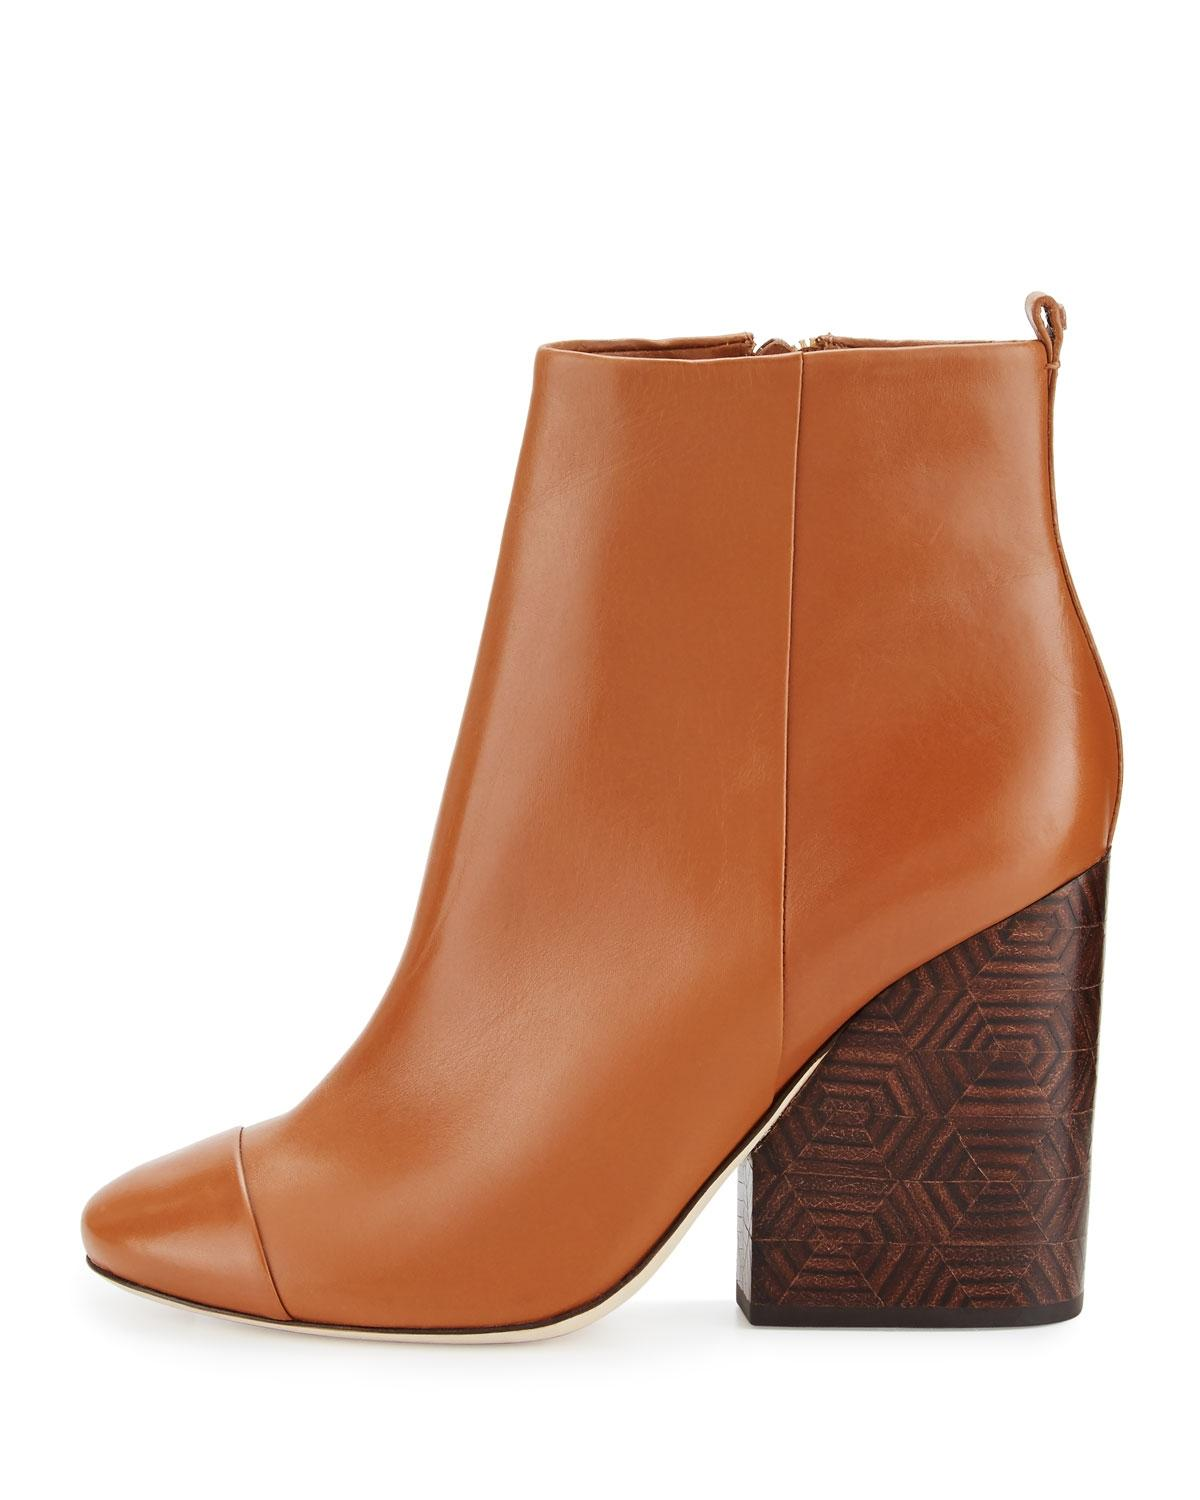 70dcab374833 ... Tory Tory Tory Burch Royal Tan Grove 100mm Leather Boots Booties Size US  10 Regular ...